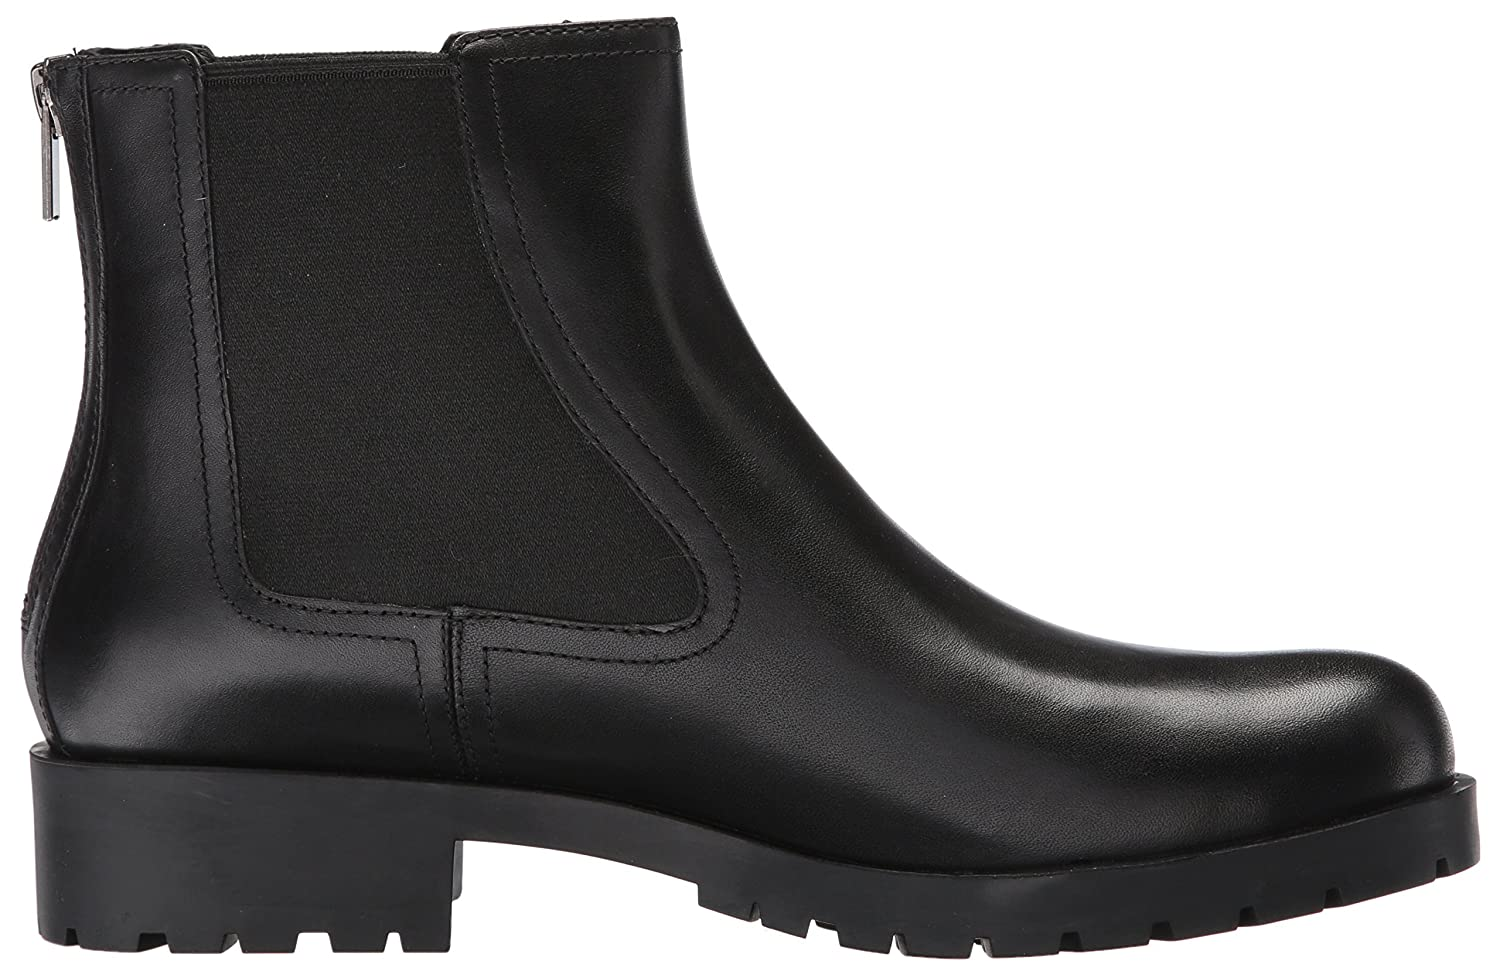 Cole Haan Women's Stanton WP Chelsea B01N27WNUA 7.5 B(M) US|Black Leather